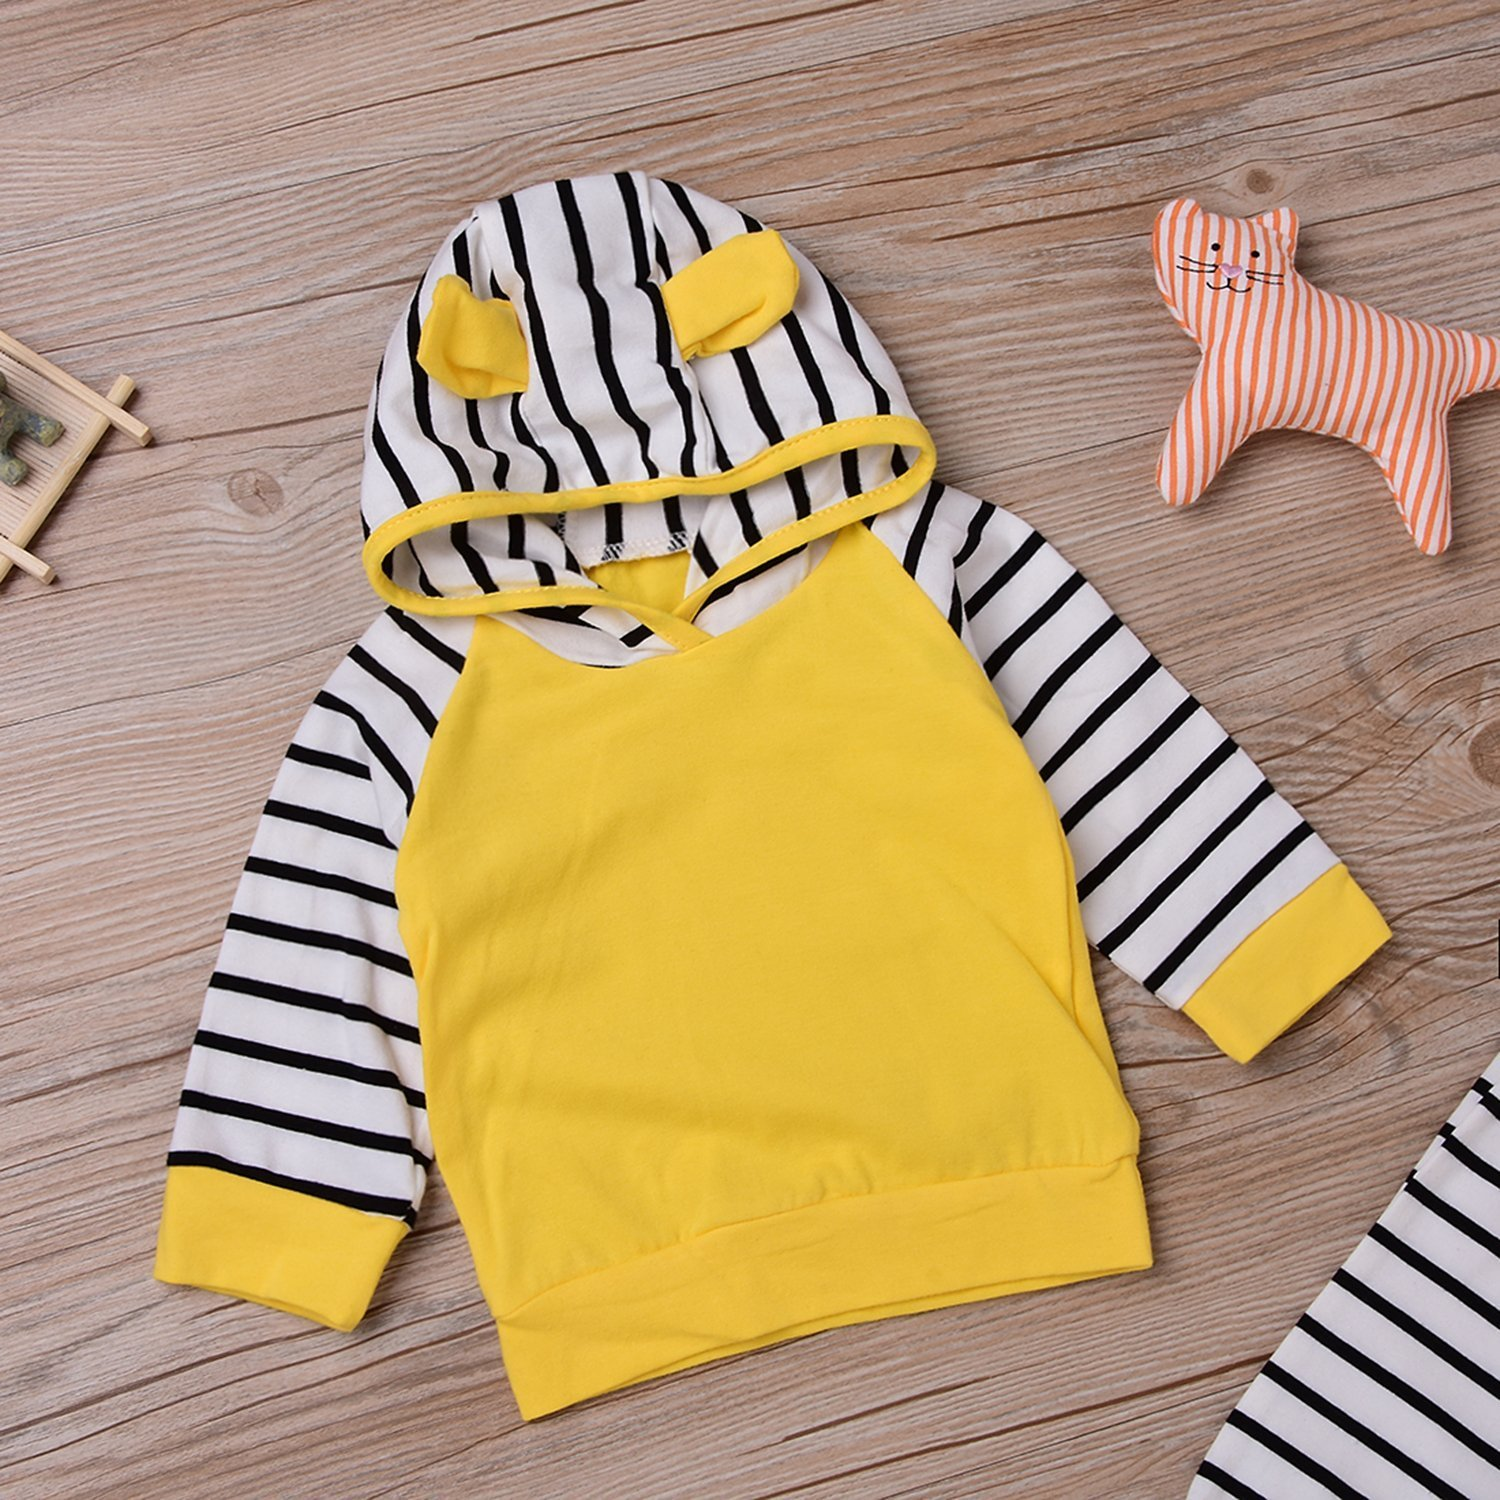 Zefeng Baby Girls Boys Long Sleeve Yellow Hooded Tops + Leggings Trousers Outfits Set Clothes (6-12months)